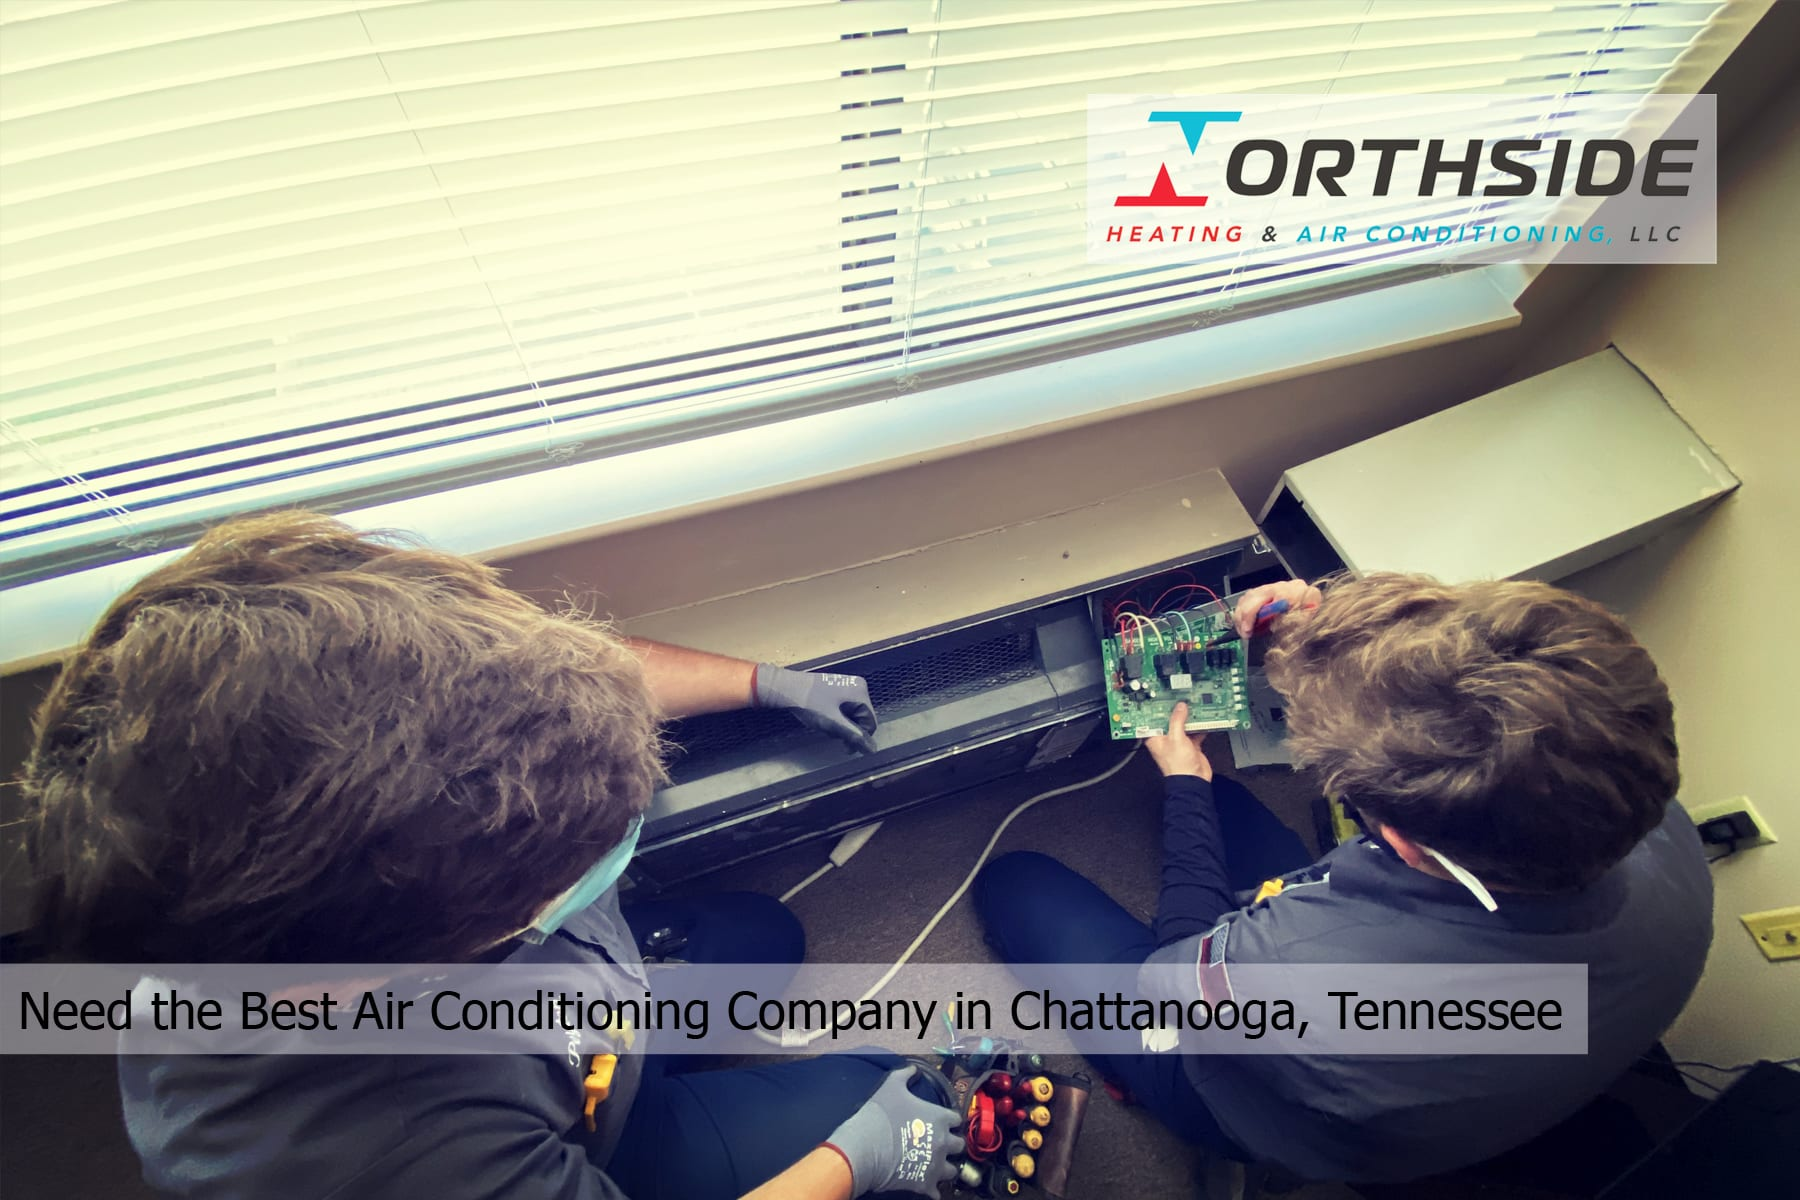 Need the Best Air Conditioning Company in Chattanooga, Tennessee